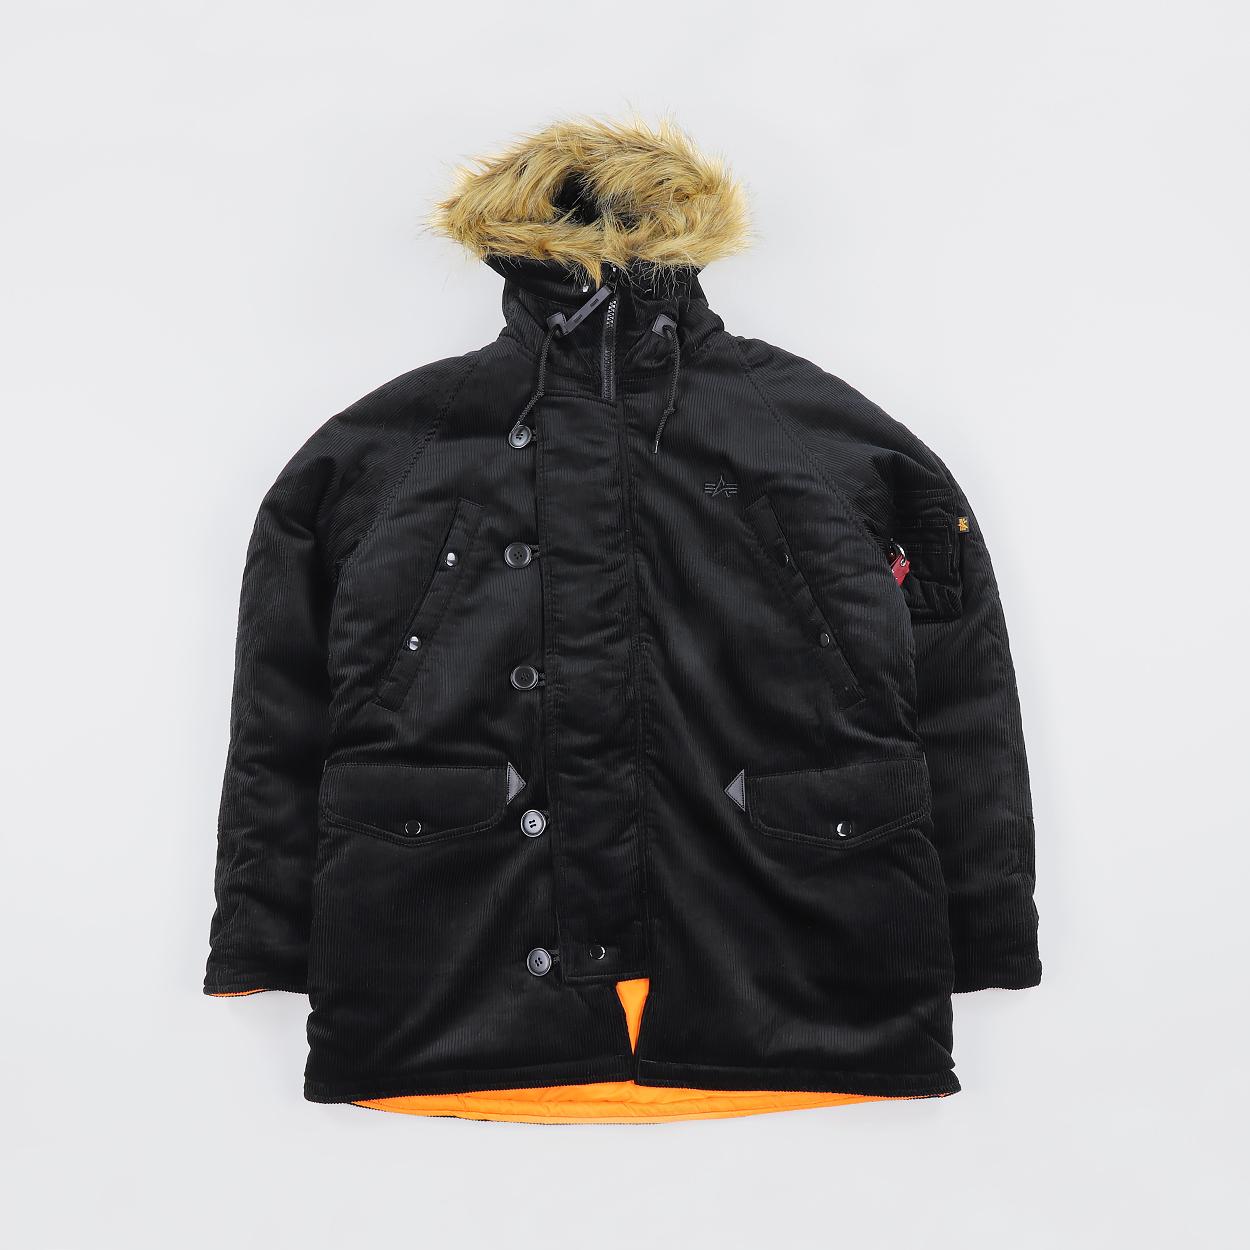 3291f44d0d7 The Cords and Co. x Alpha Industries N-3B Corduroy Parka Black £193.00